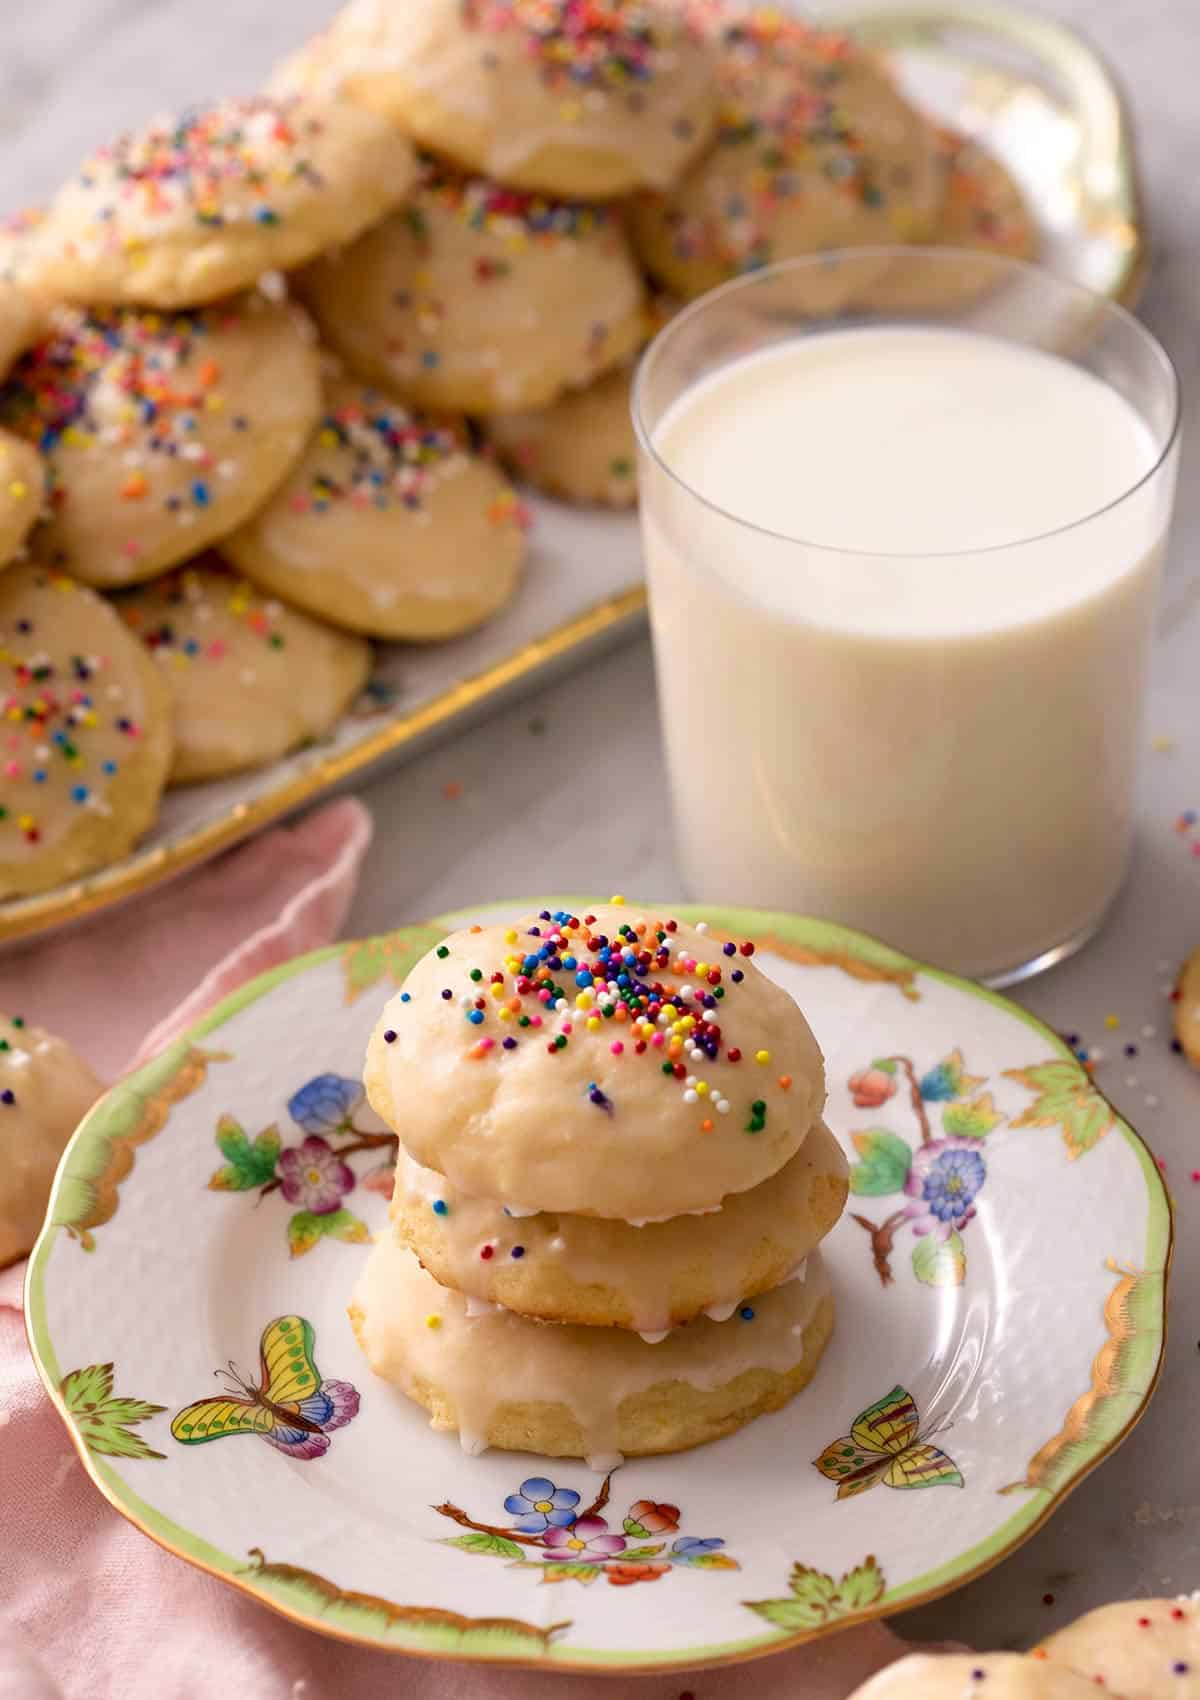 Ricotta cookies stacked on top of each other with a glass of milk in the background